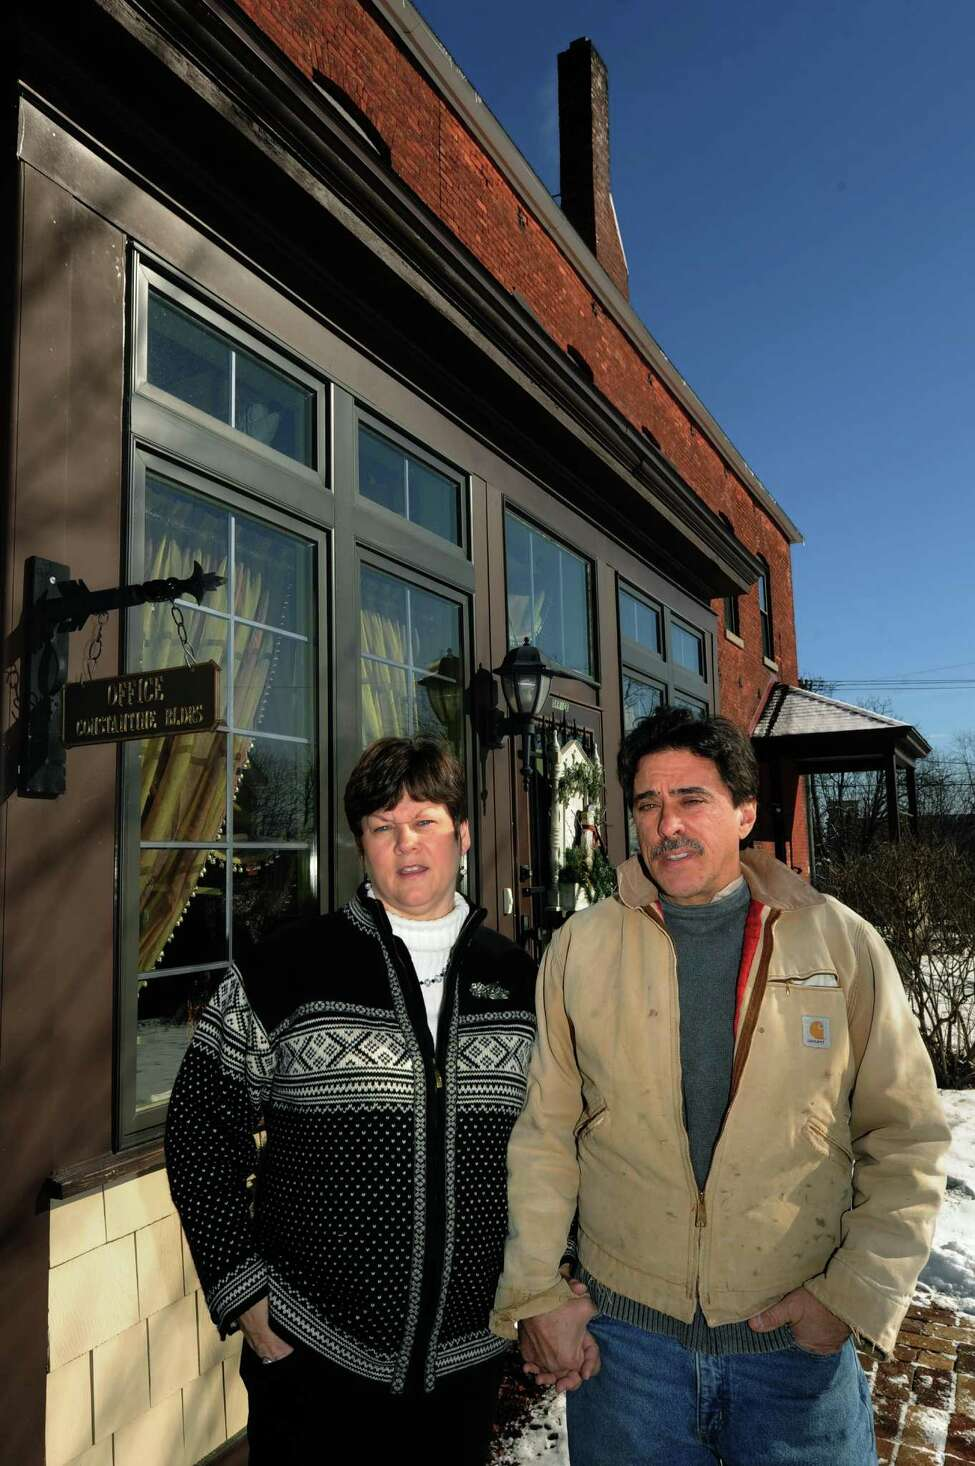 Jules and her husband Joseph Constantine in front of their office for Constantine Builders Inc. on Saturday Jan. 26,2013 in Amsterdam, N.Y. (Michael P. Farrell/Times Union)